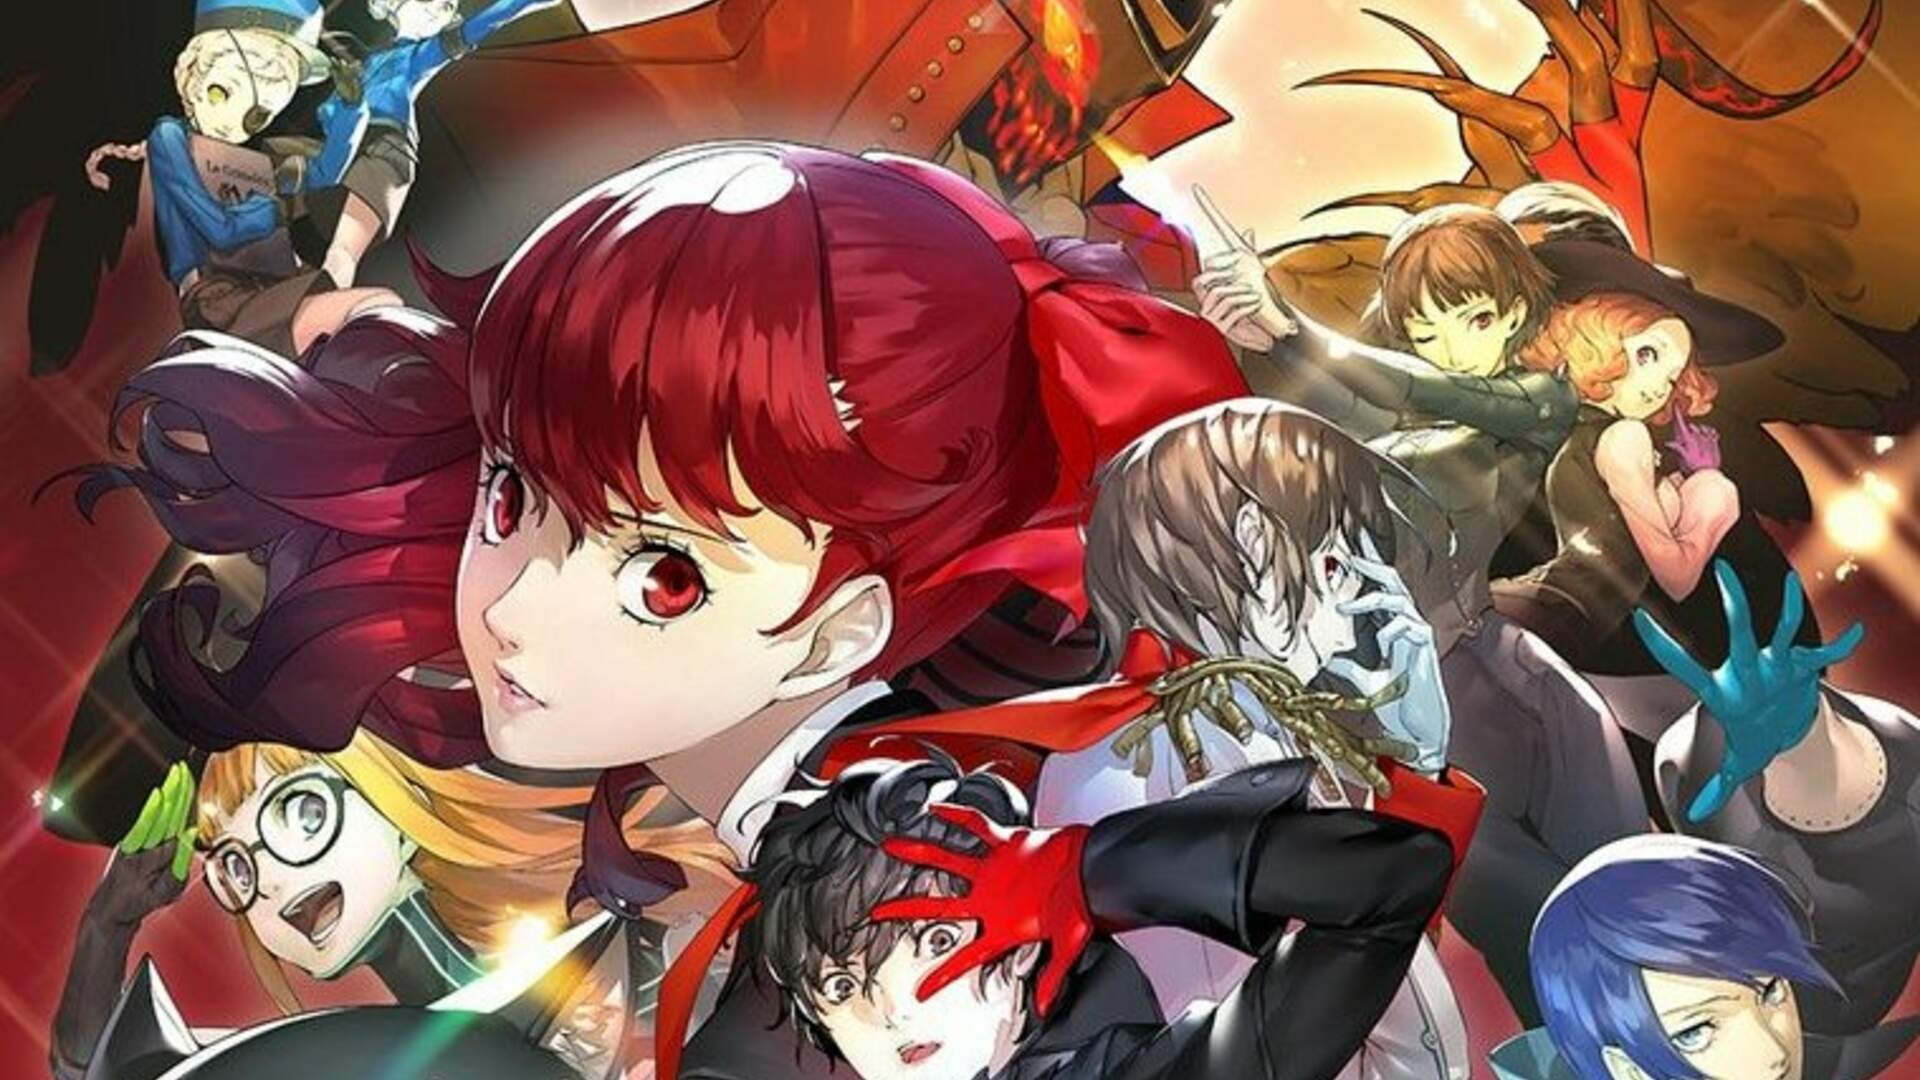 Persona 5 Royal Release Date, Kasumi, All Trailers, New Confidant - Everything We Know